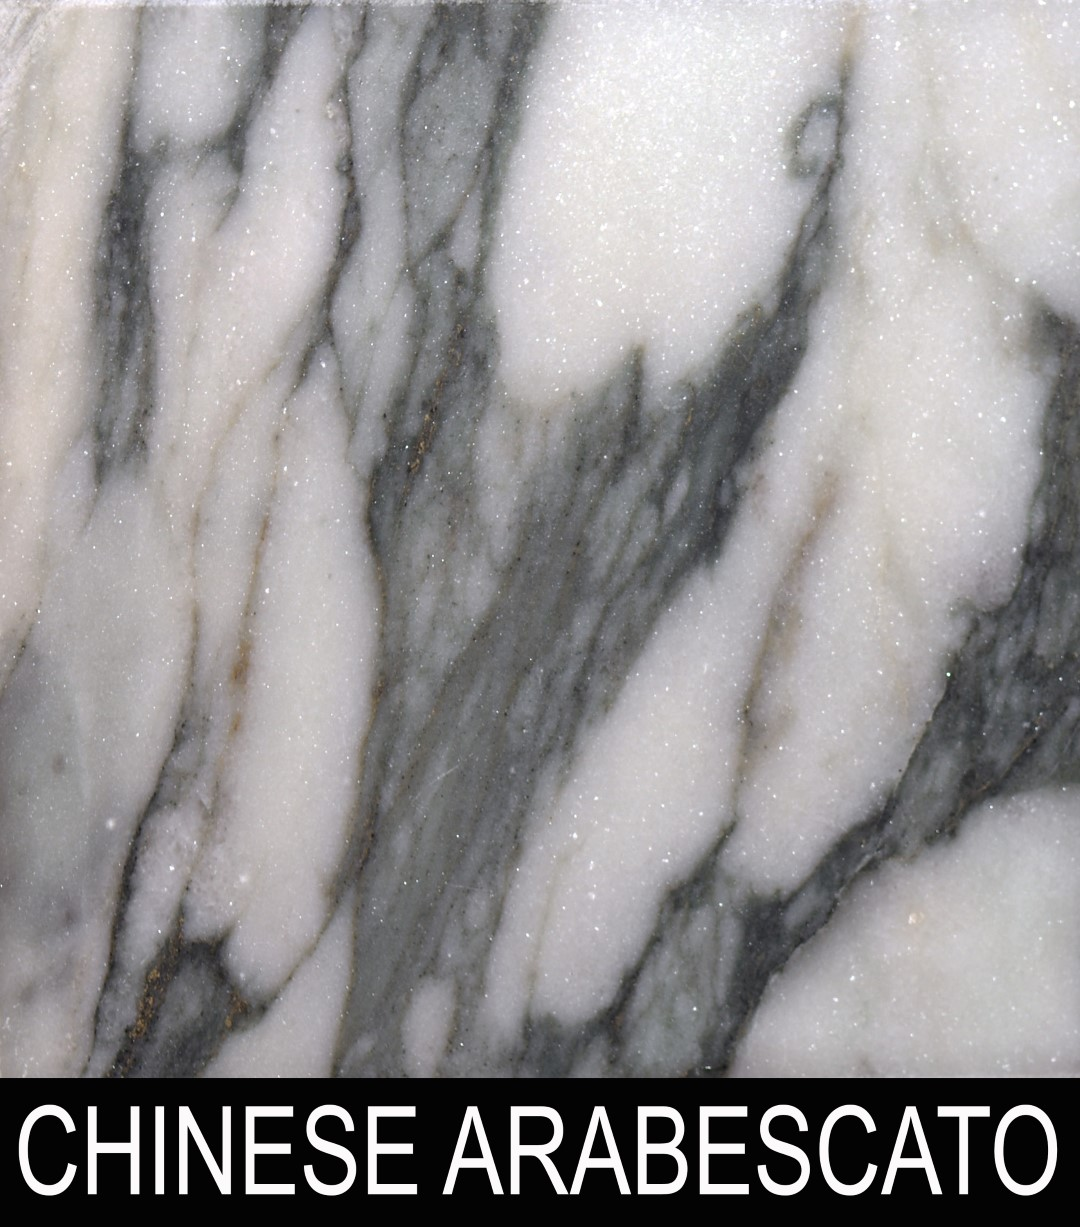 chinese-arabescato-sample.jpg